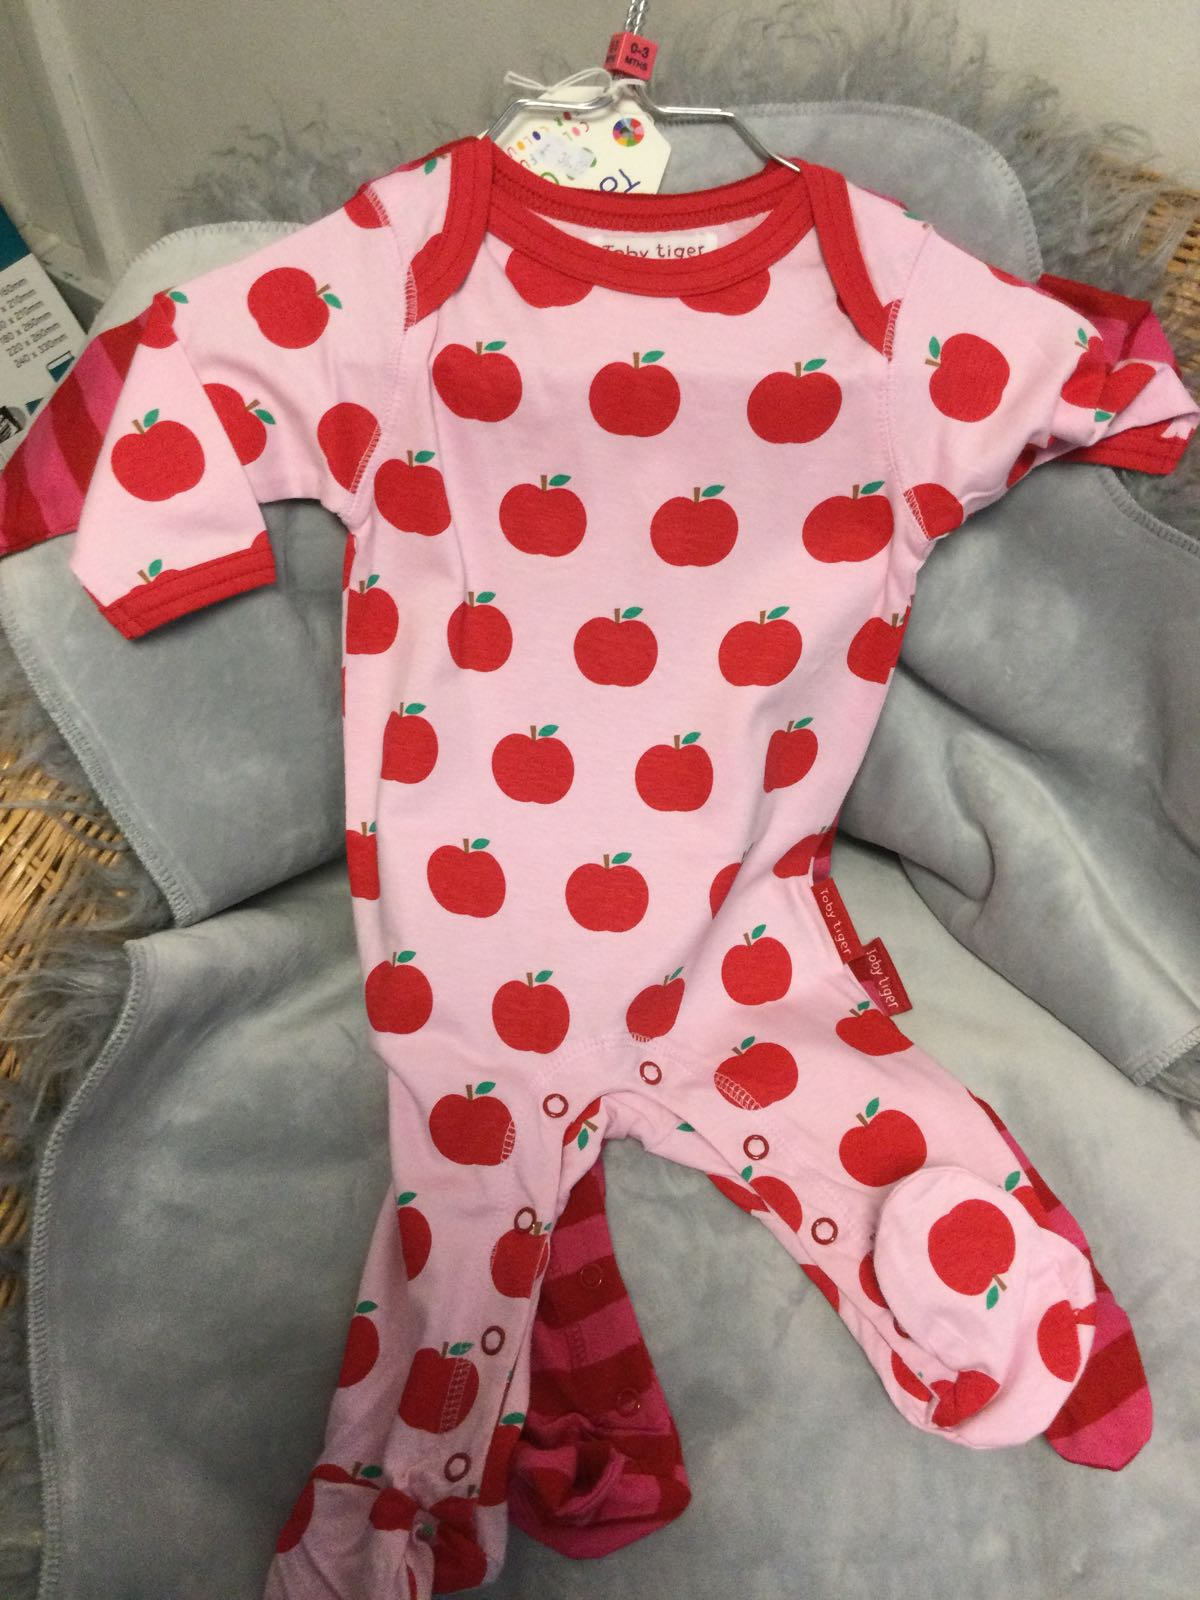 Toby Tiger - Sleep suit with feet 2 pack - Apple 0-3 months